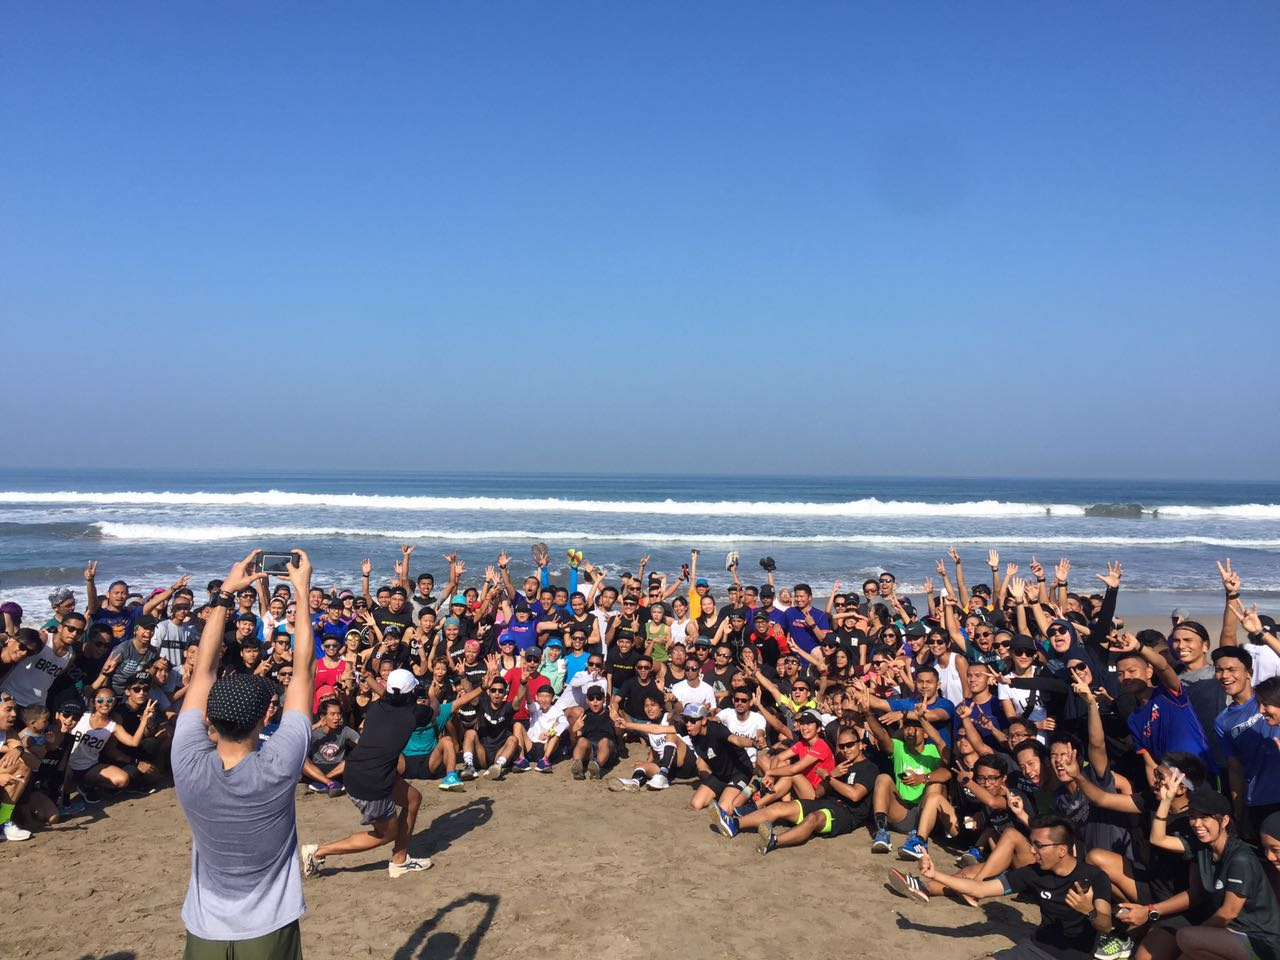 Different countries, crews, and culture, united for the love of running